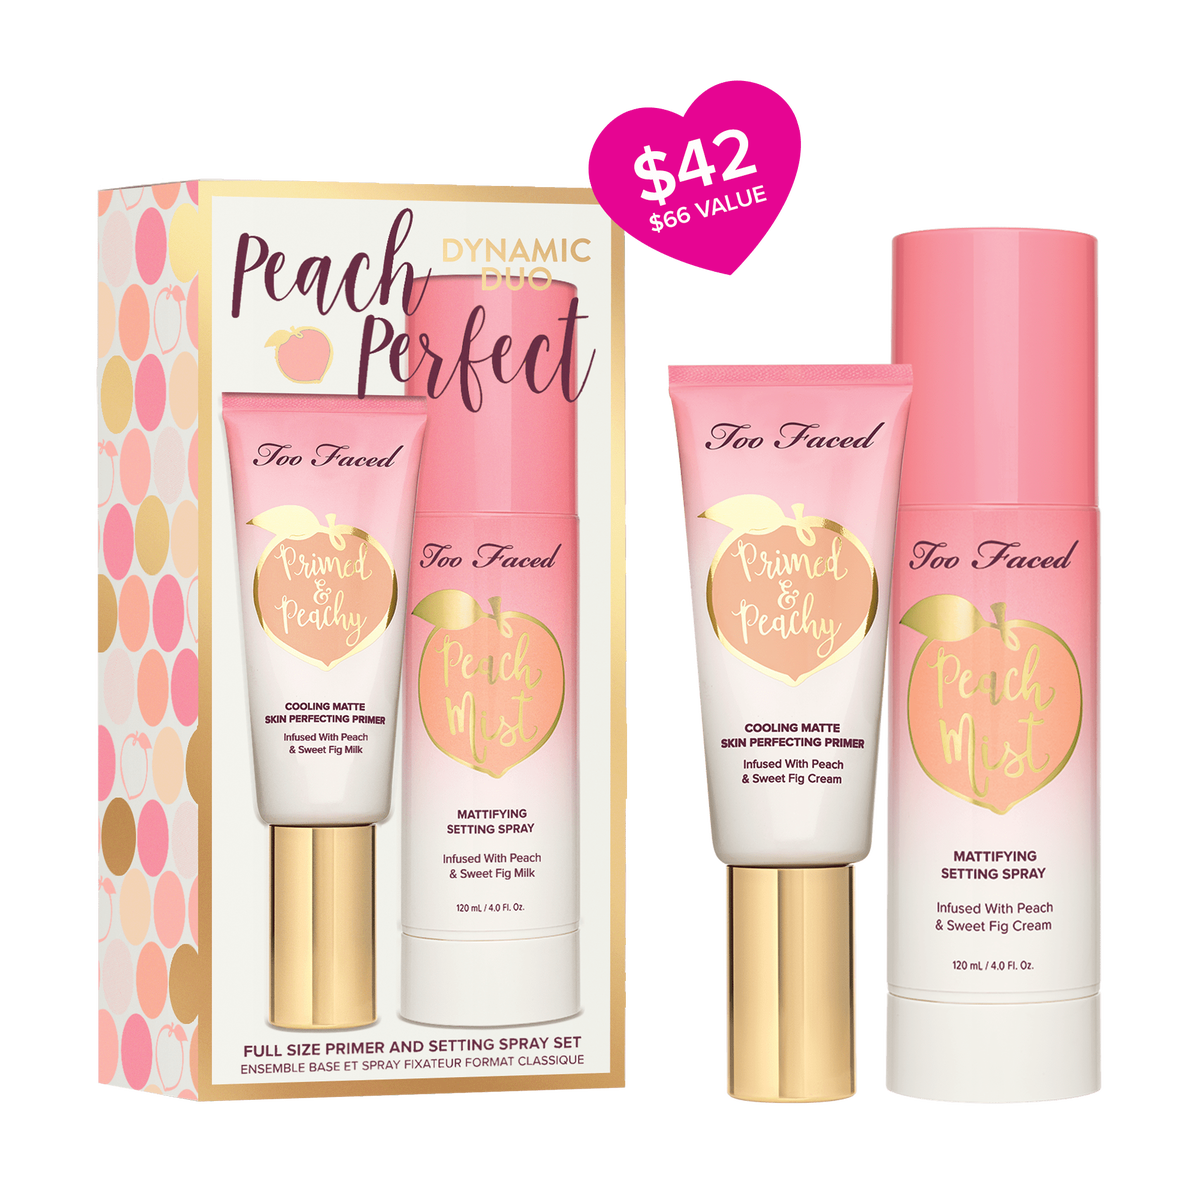 Peach Perfect Dynamic Duo Set (With images) Makeup